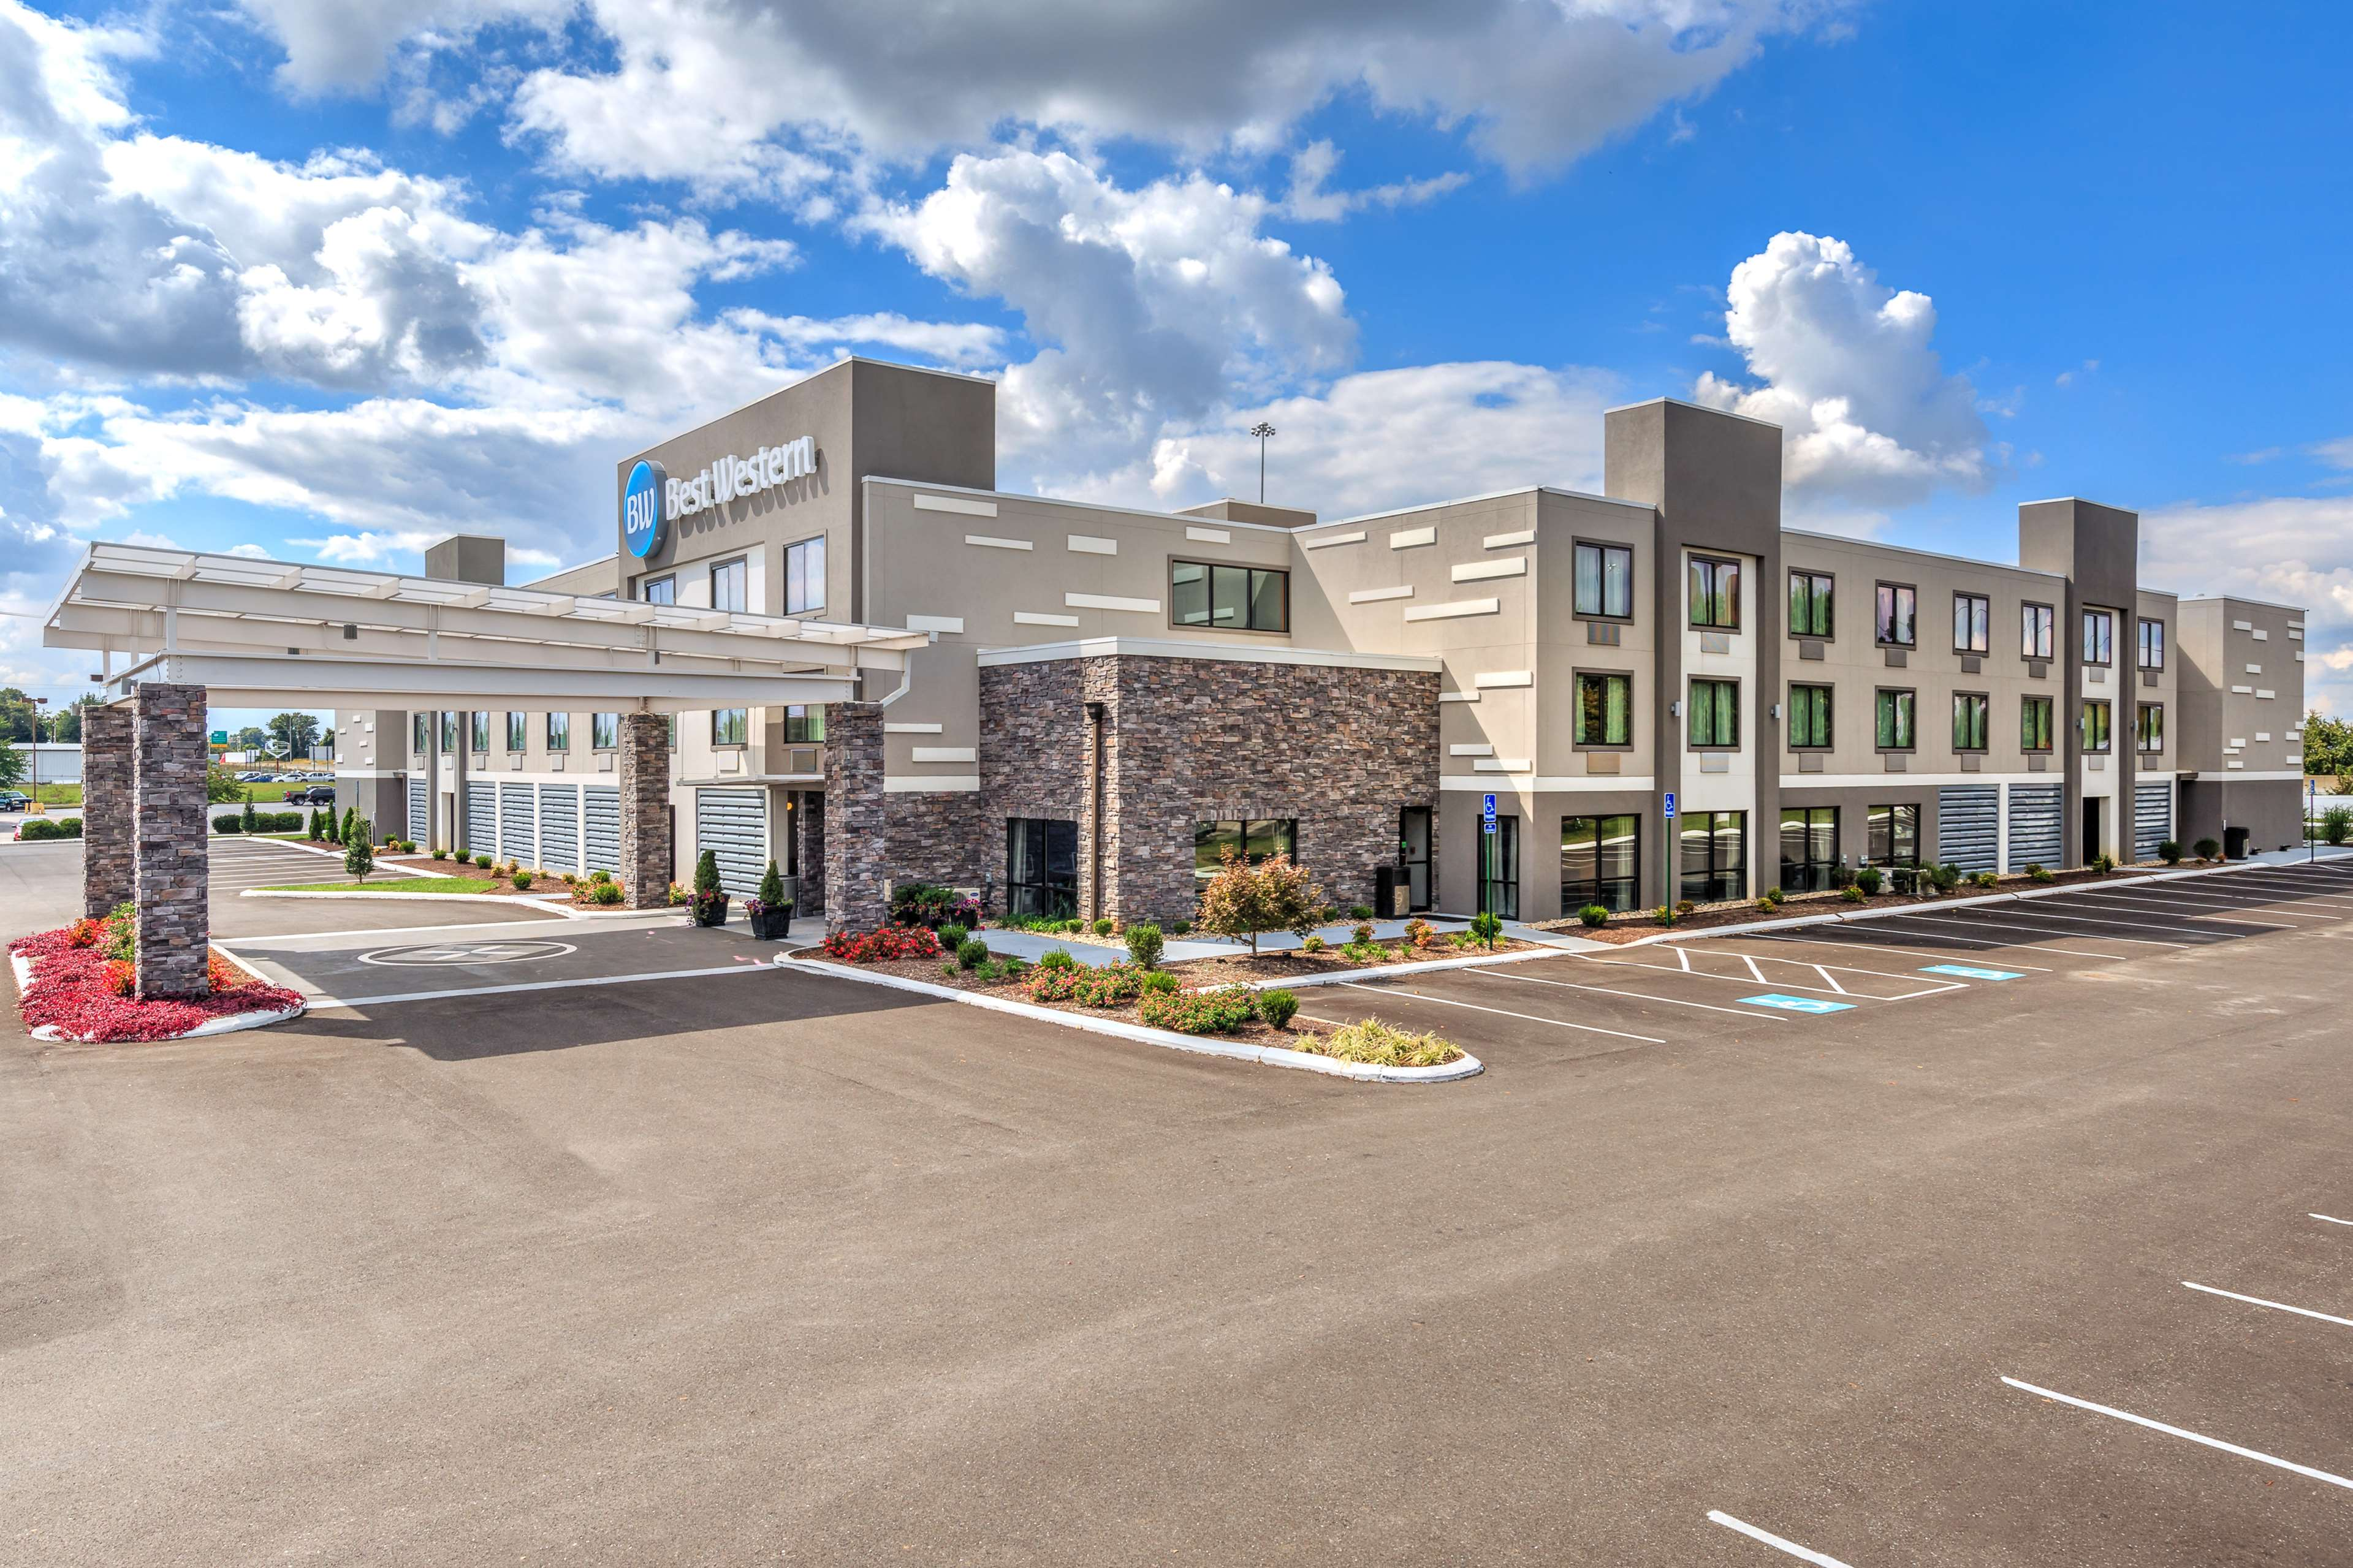 Best Western Bowling Green image 0